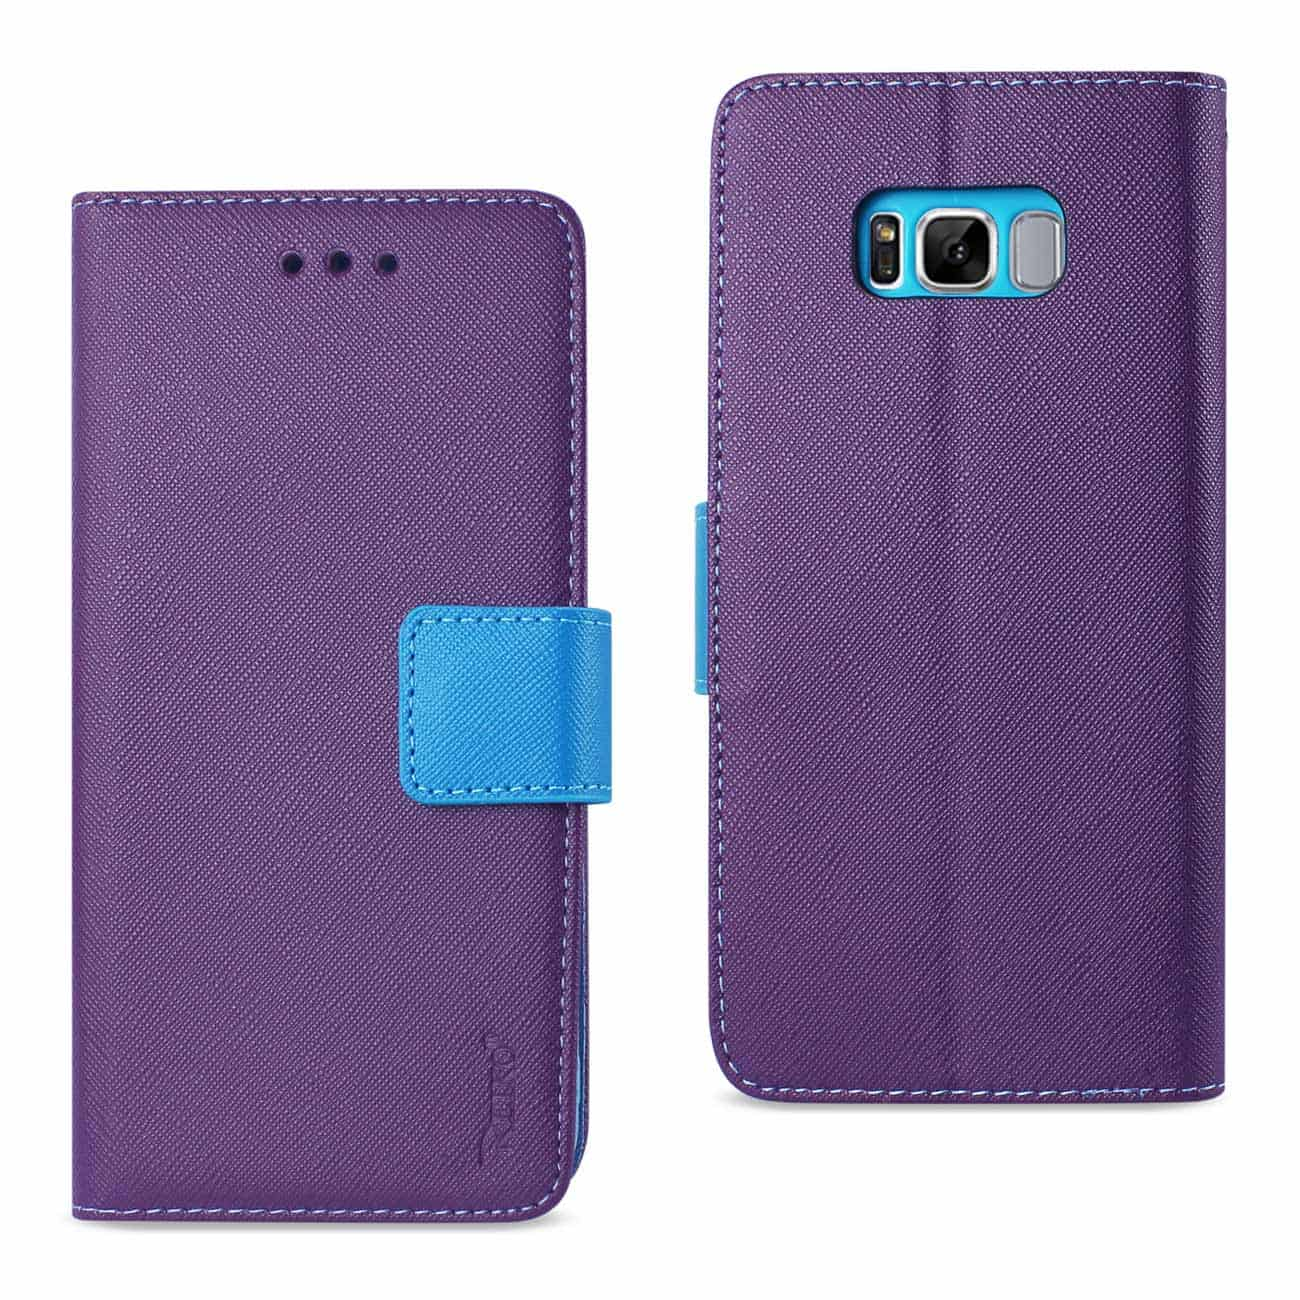 SAMSUNG GALAXY S8 EDGE/ S8 PLUS 3-IN-1 WALLET CASE IN PURPLE